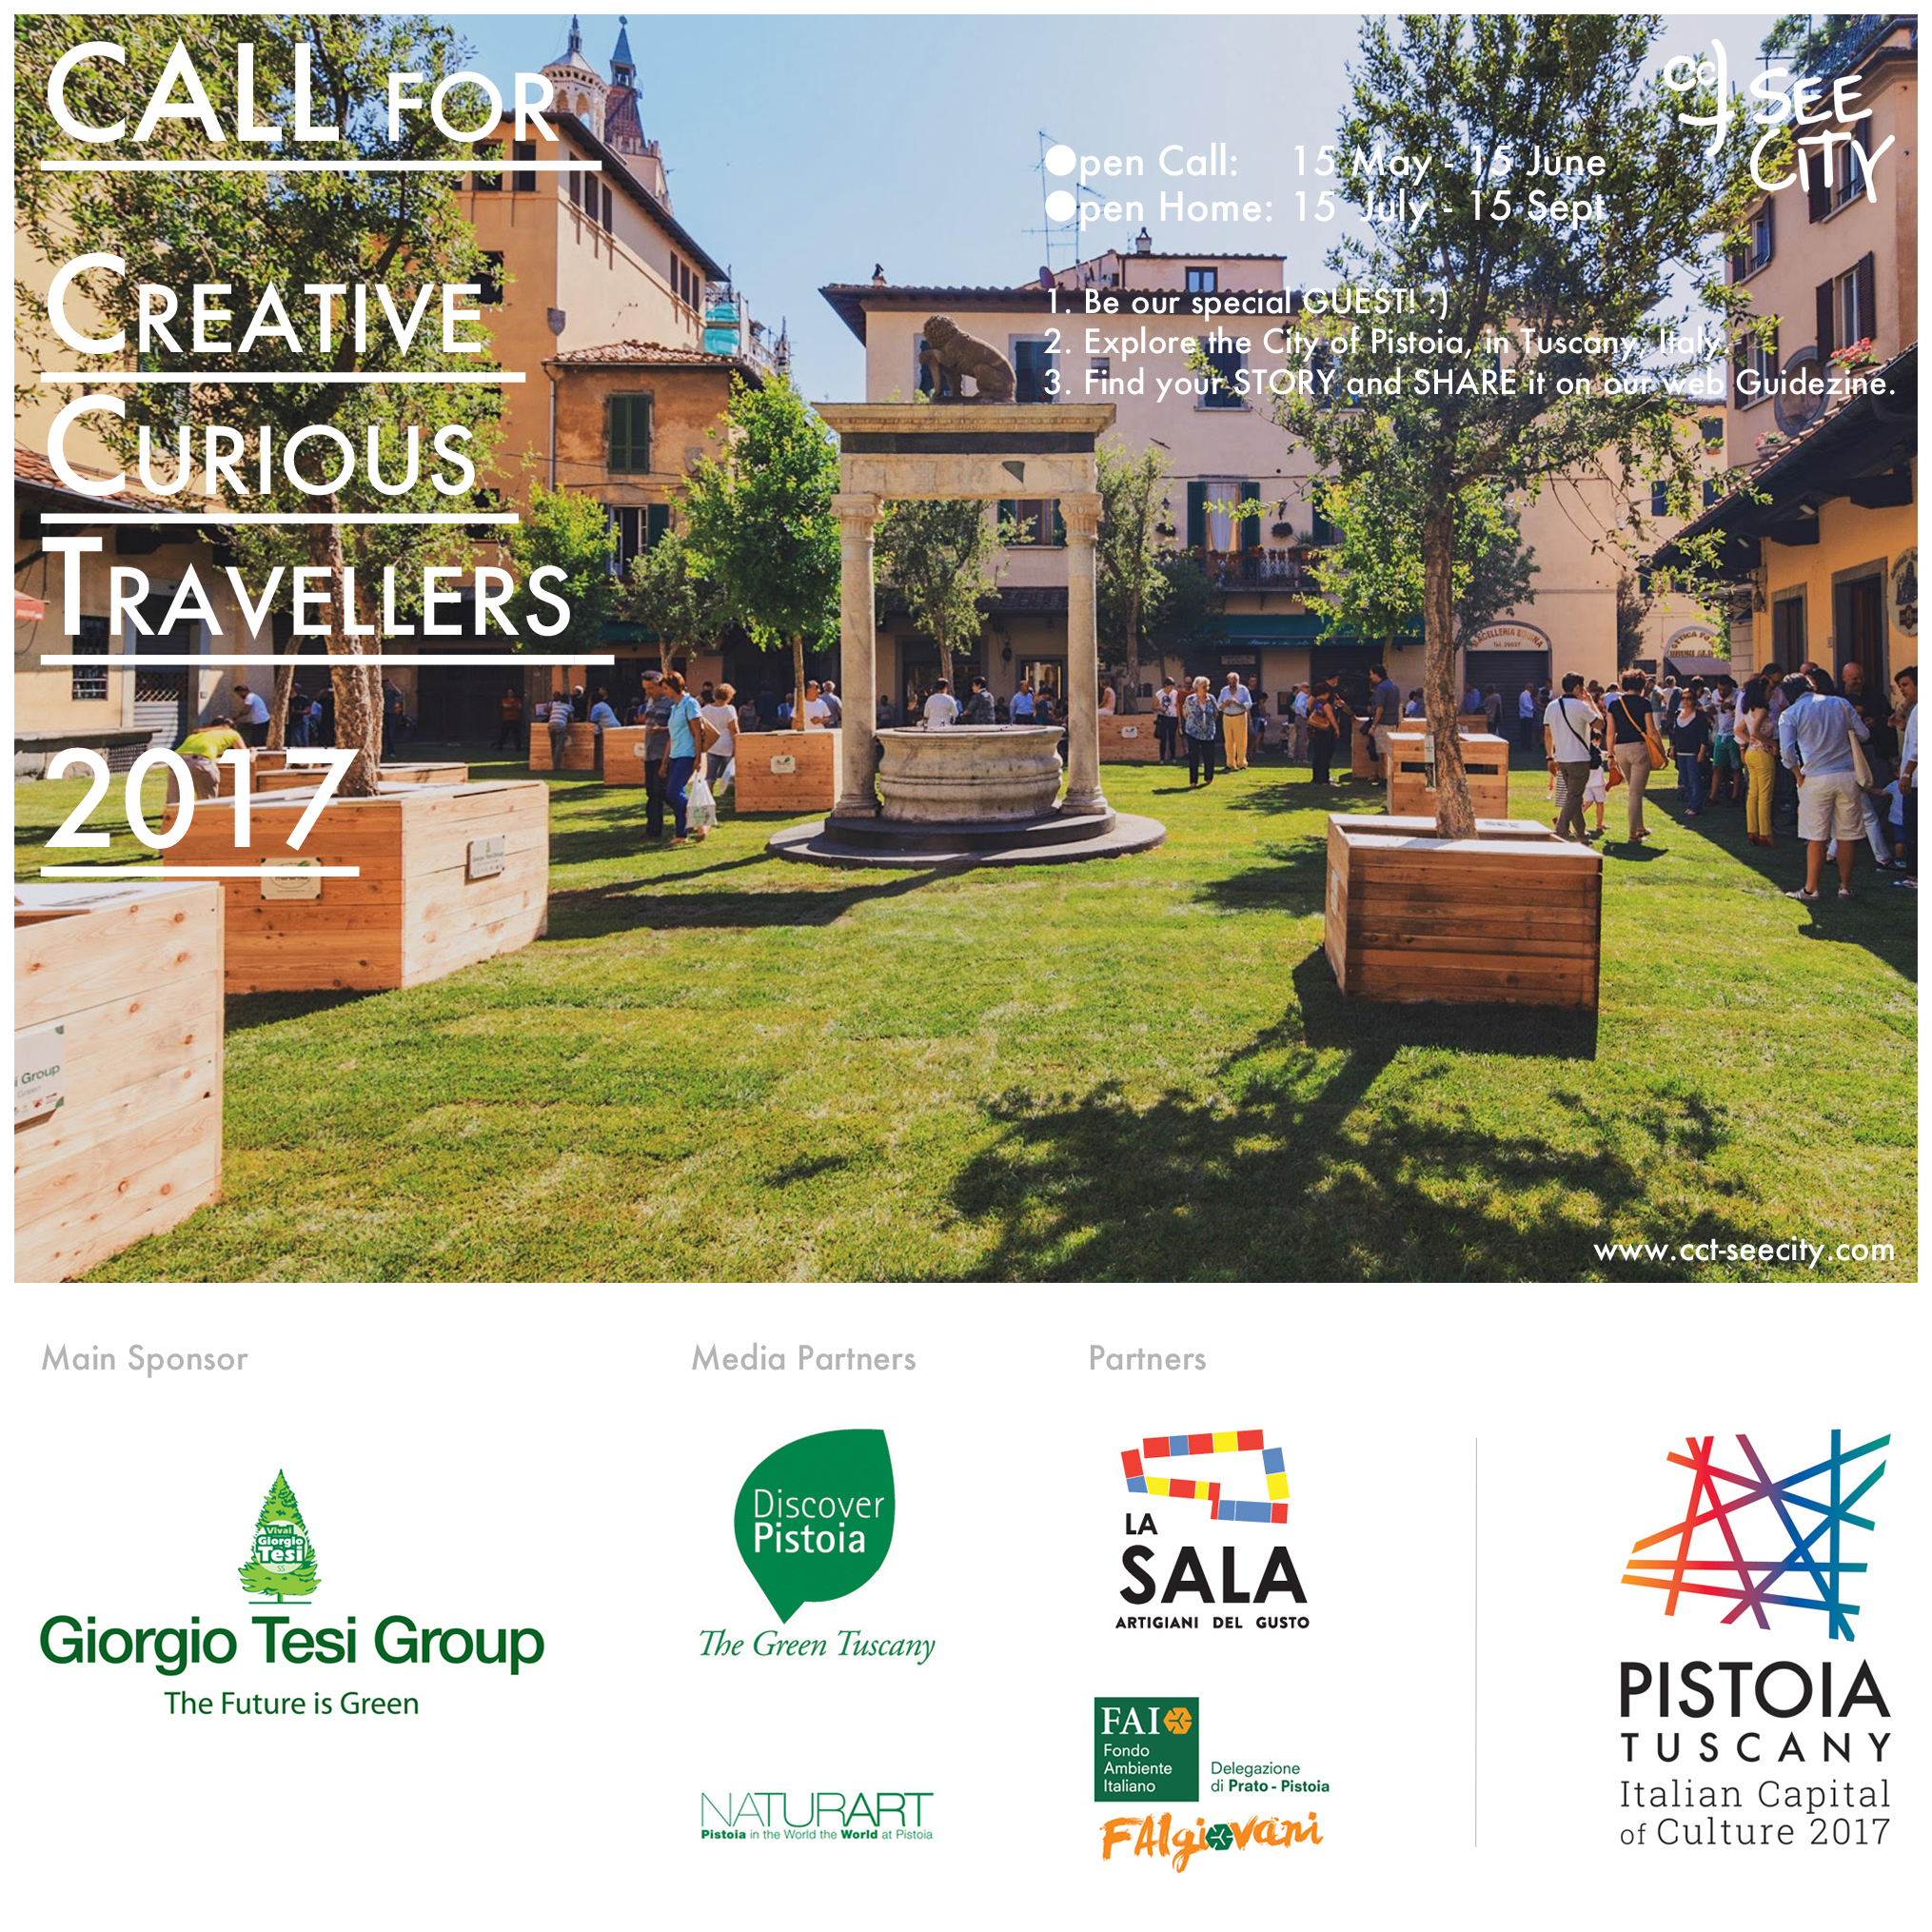 CALL for Creative Curious Travellers 2017